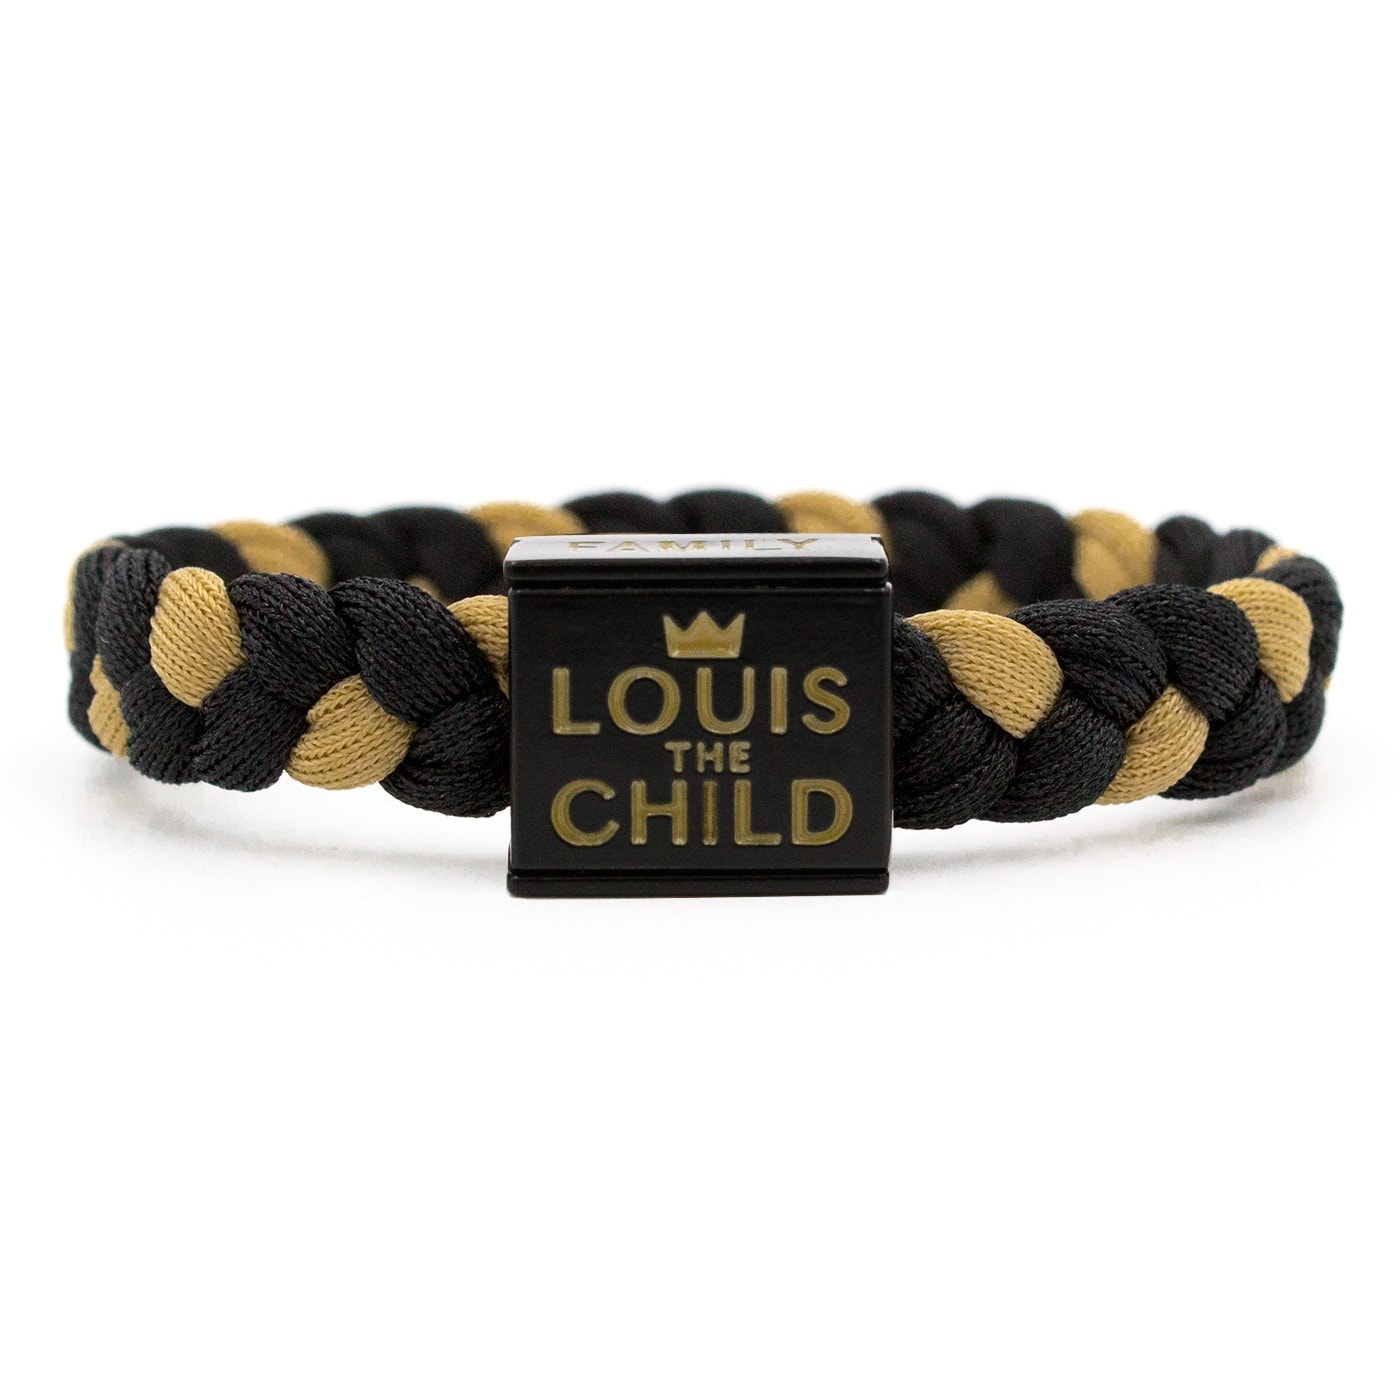 Louis the Child Bracelet